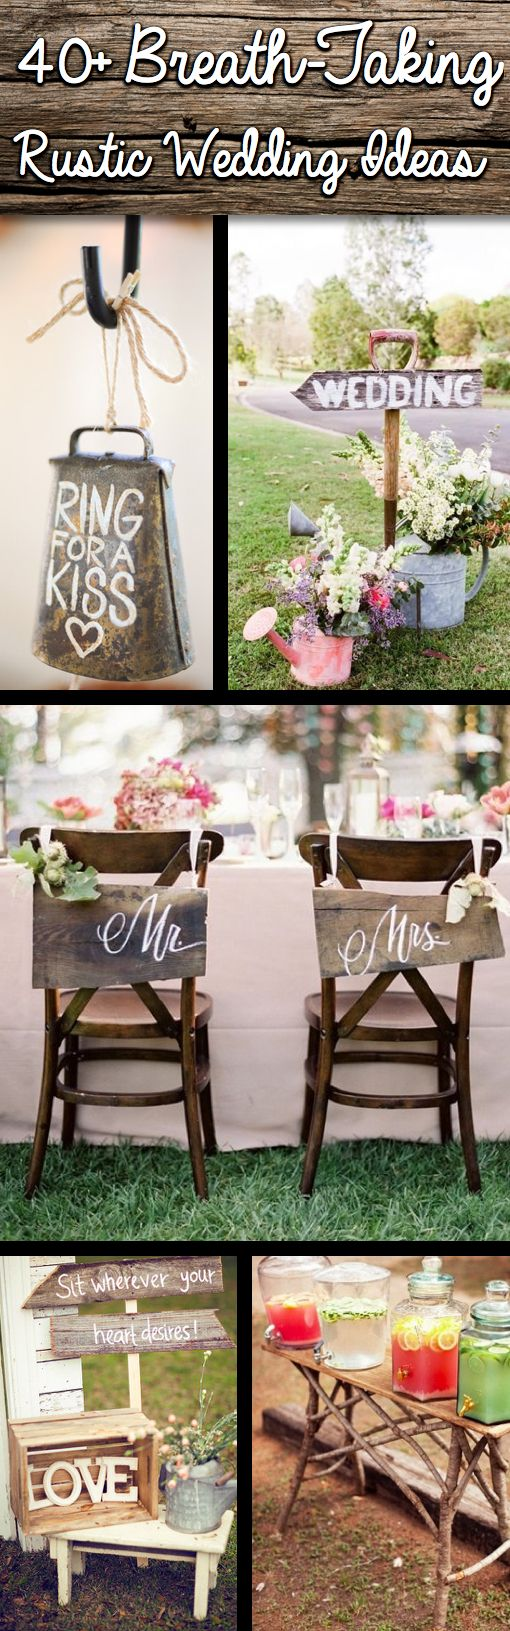 Diy rustic wedding decor ideas  Shine On Your Wedding Day With These BreathTaking Rustic Wedding